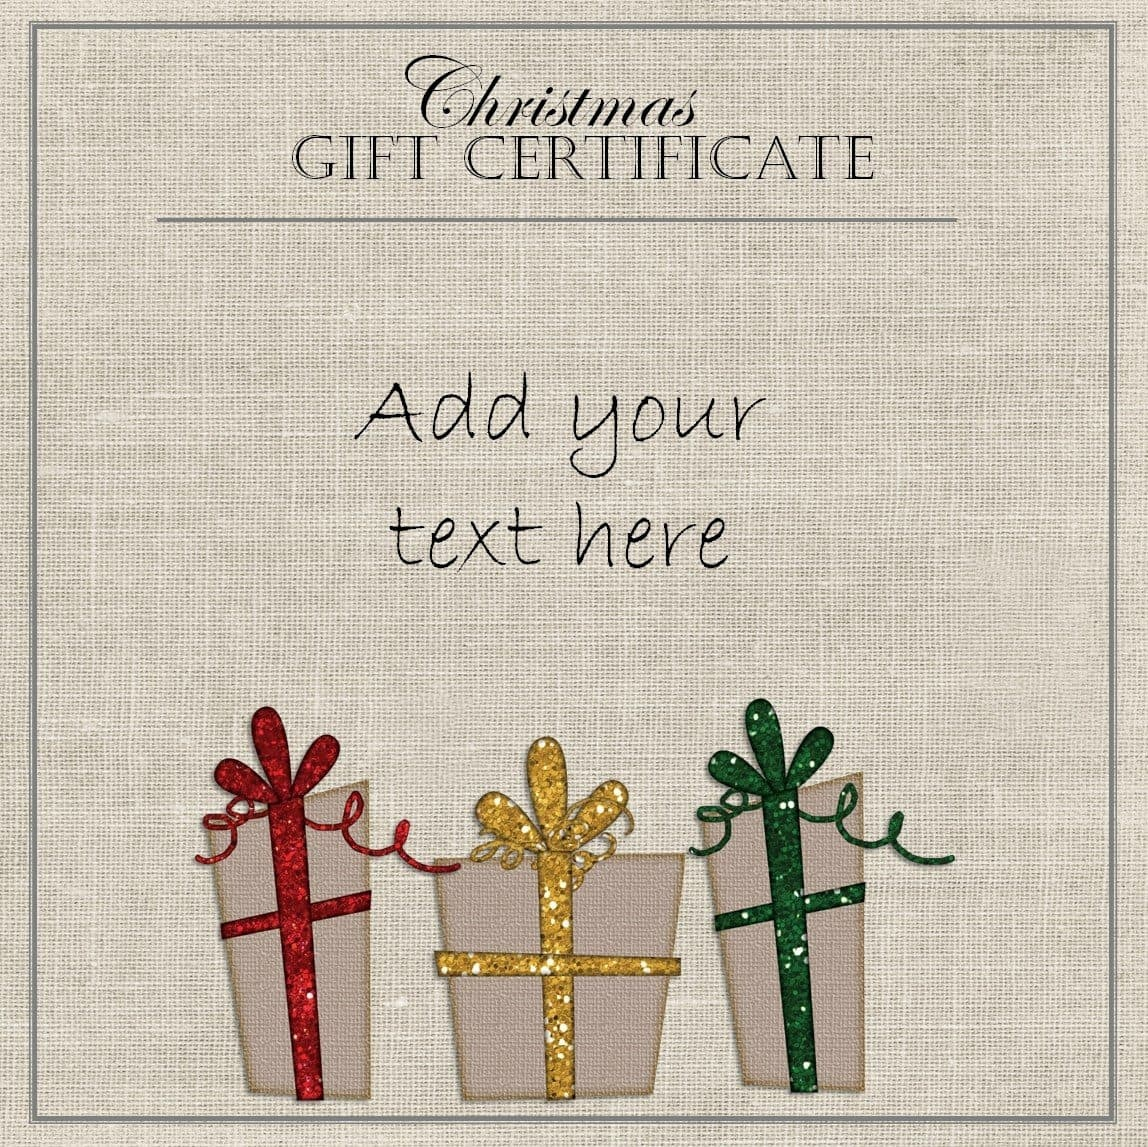 Free Christmas Gift Certificate Template | Customize Online & Download - Free Printable Gift Certificate Christmas